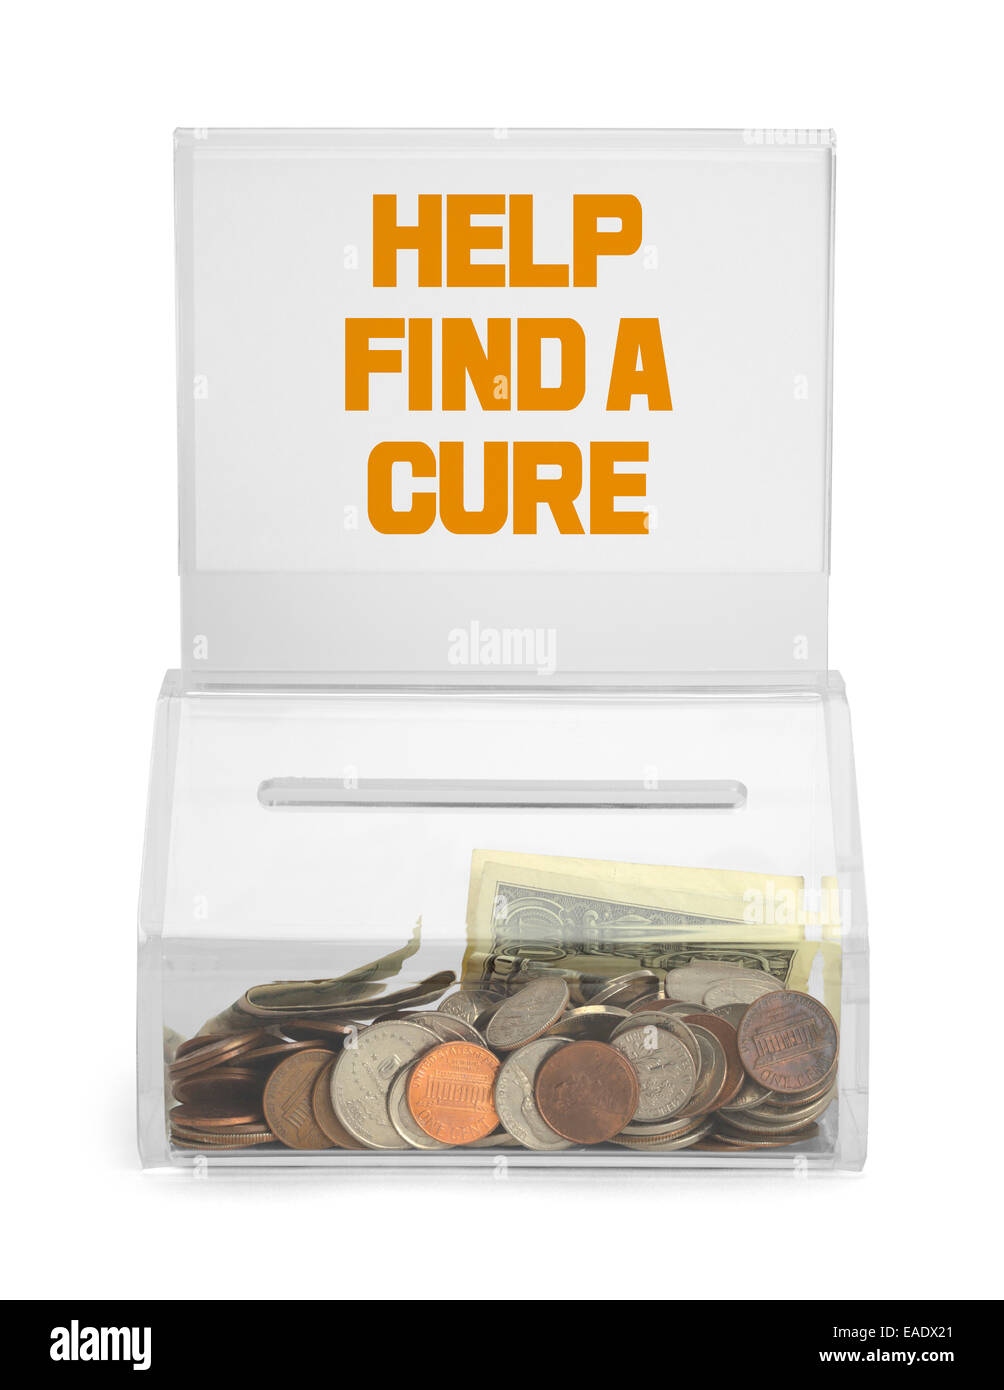 Help Find a Cure Donation Box Isolated on White Background. - Stock Image